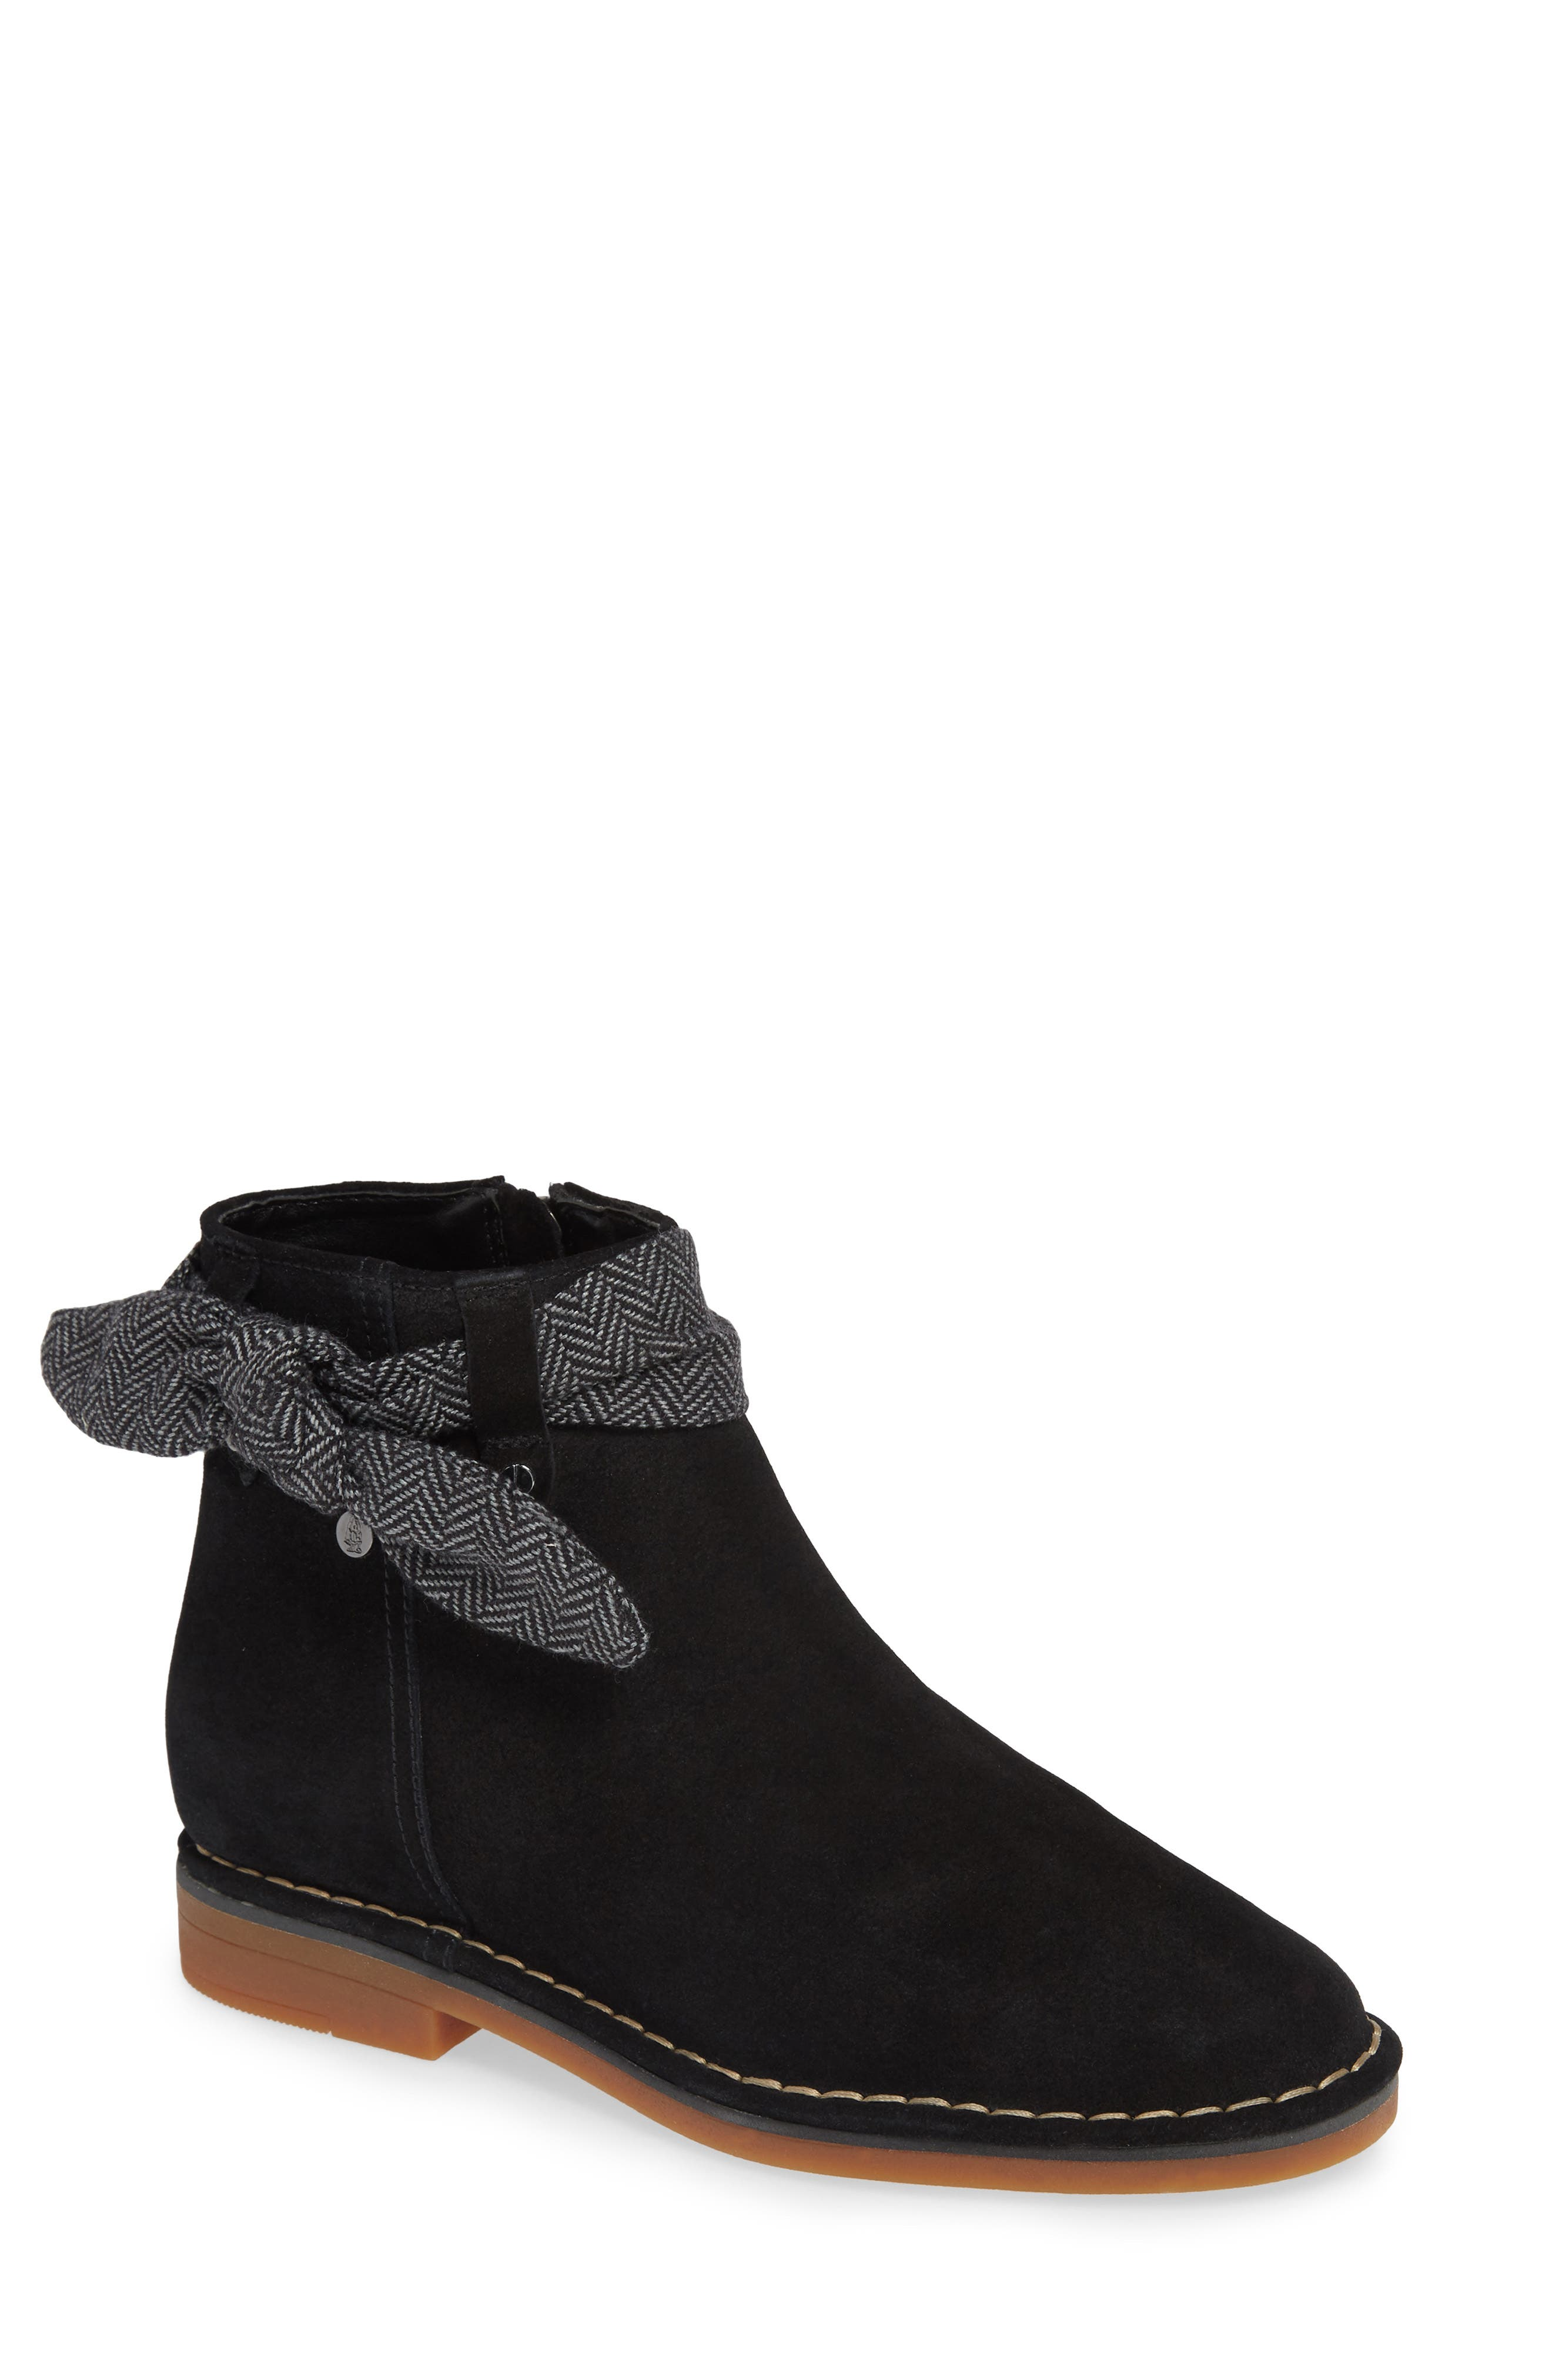 Hush Puppies Catelyn Bow Bootie, Black